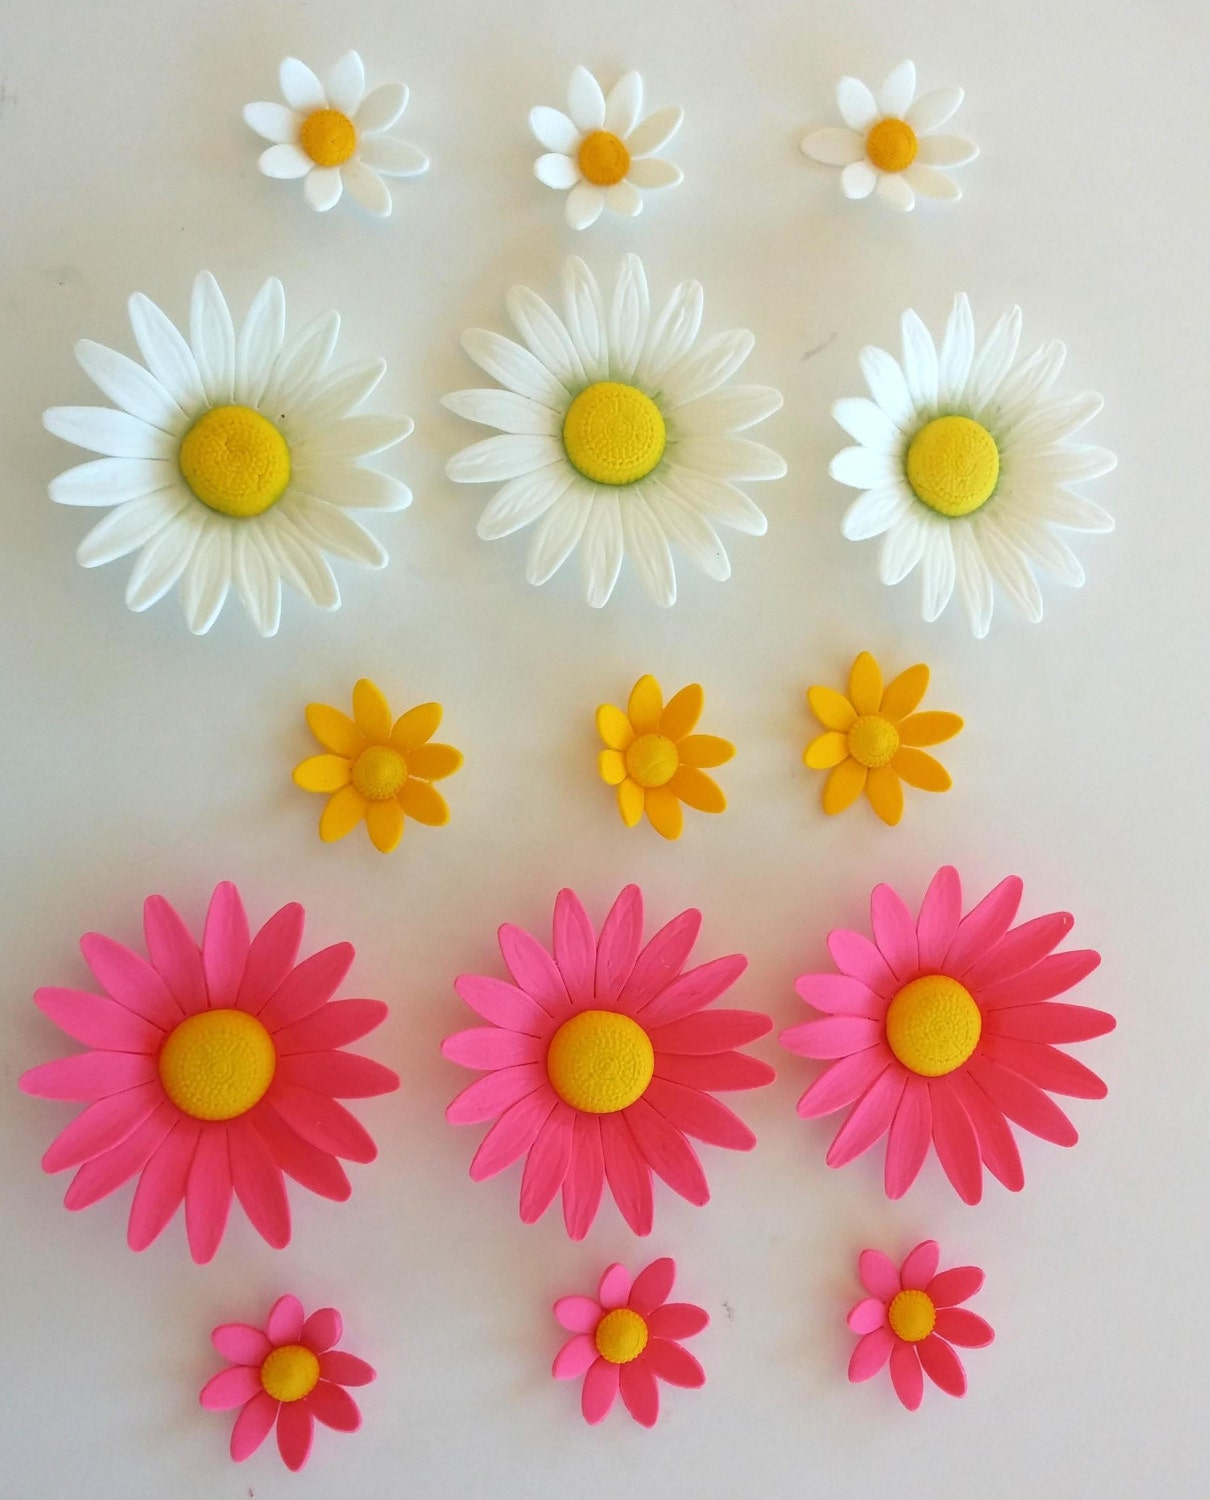 assorted GUM PASTE FLOWERS edible Daisies of assorted sizes